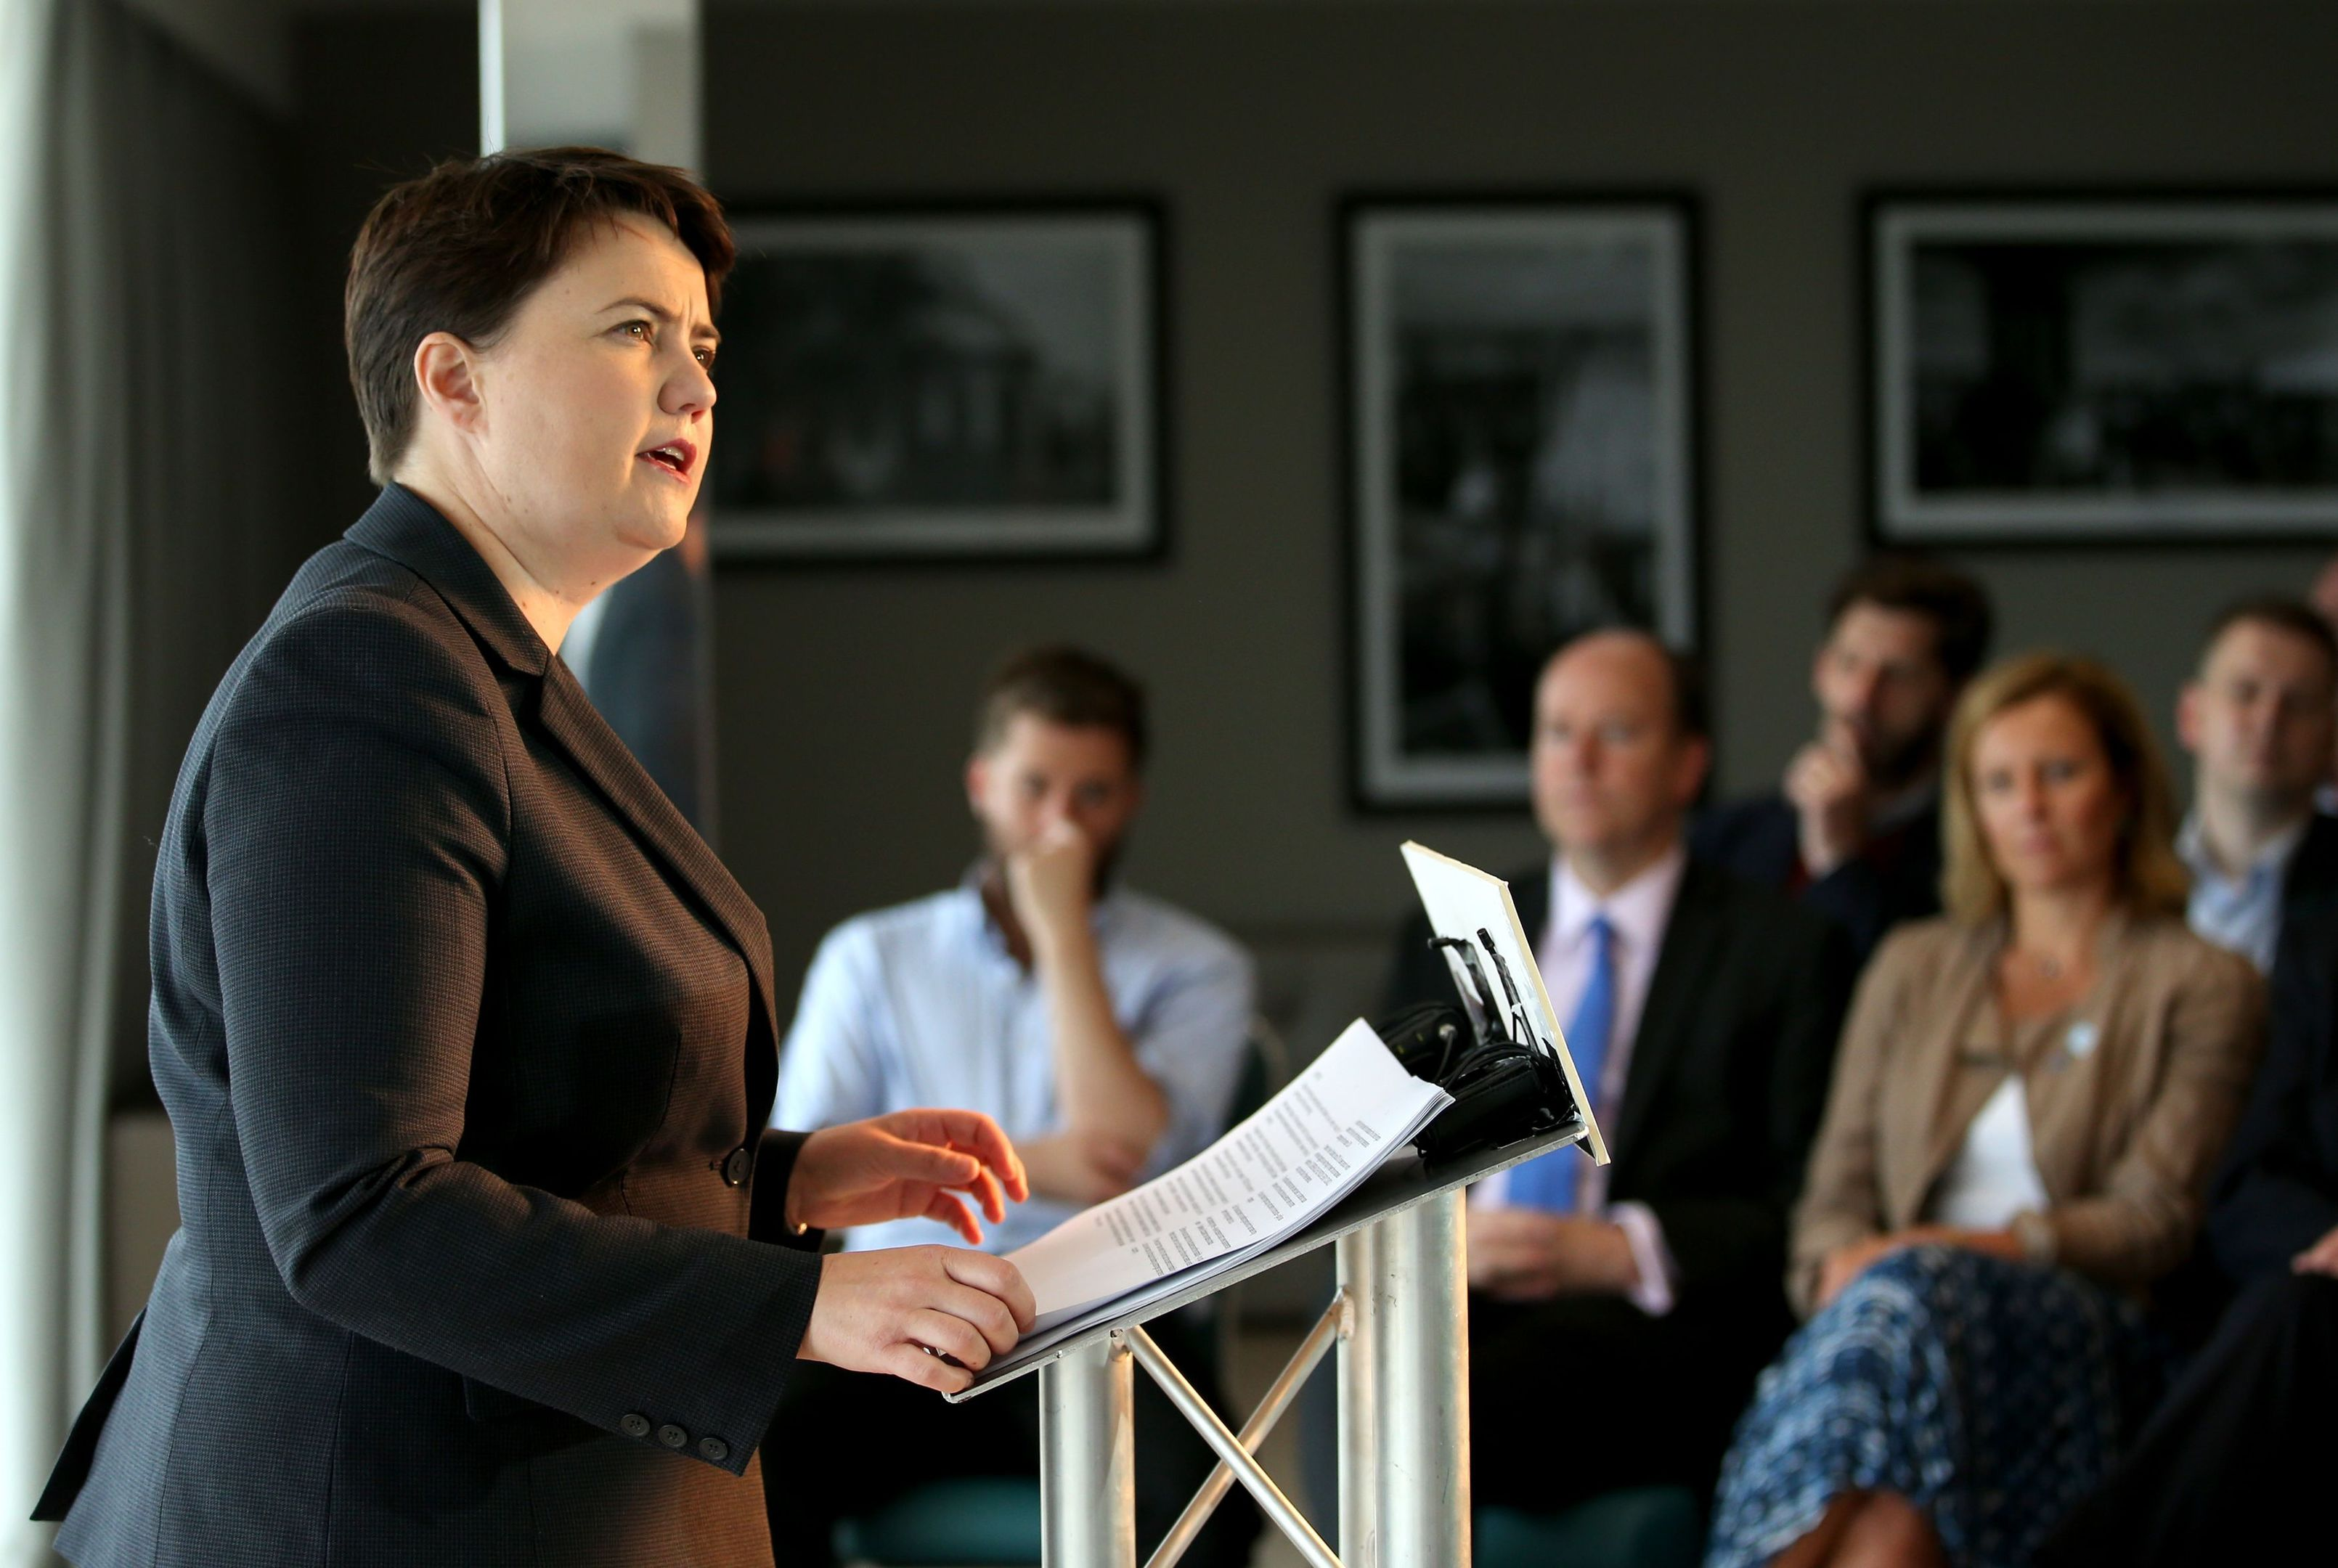 Scottish Conservative leader Ruth Davidson delivers a speech in Edinburgh.